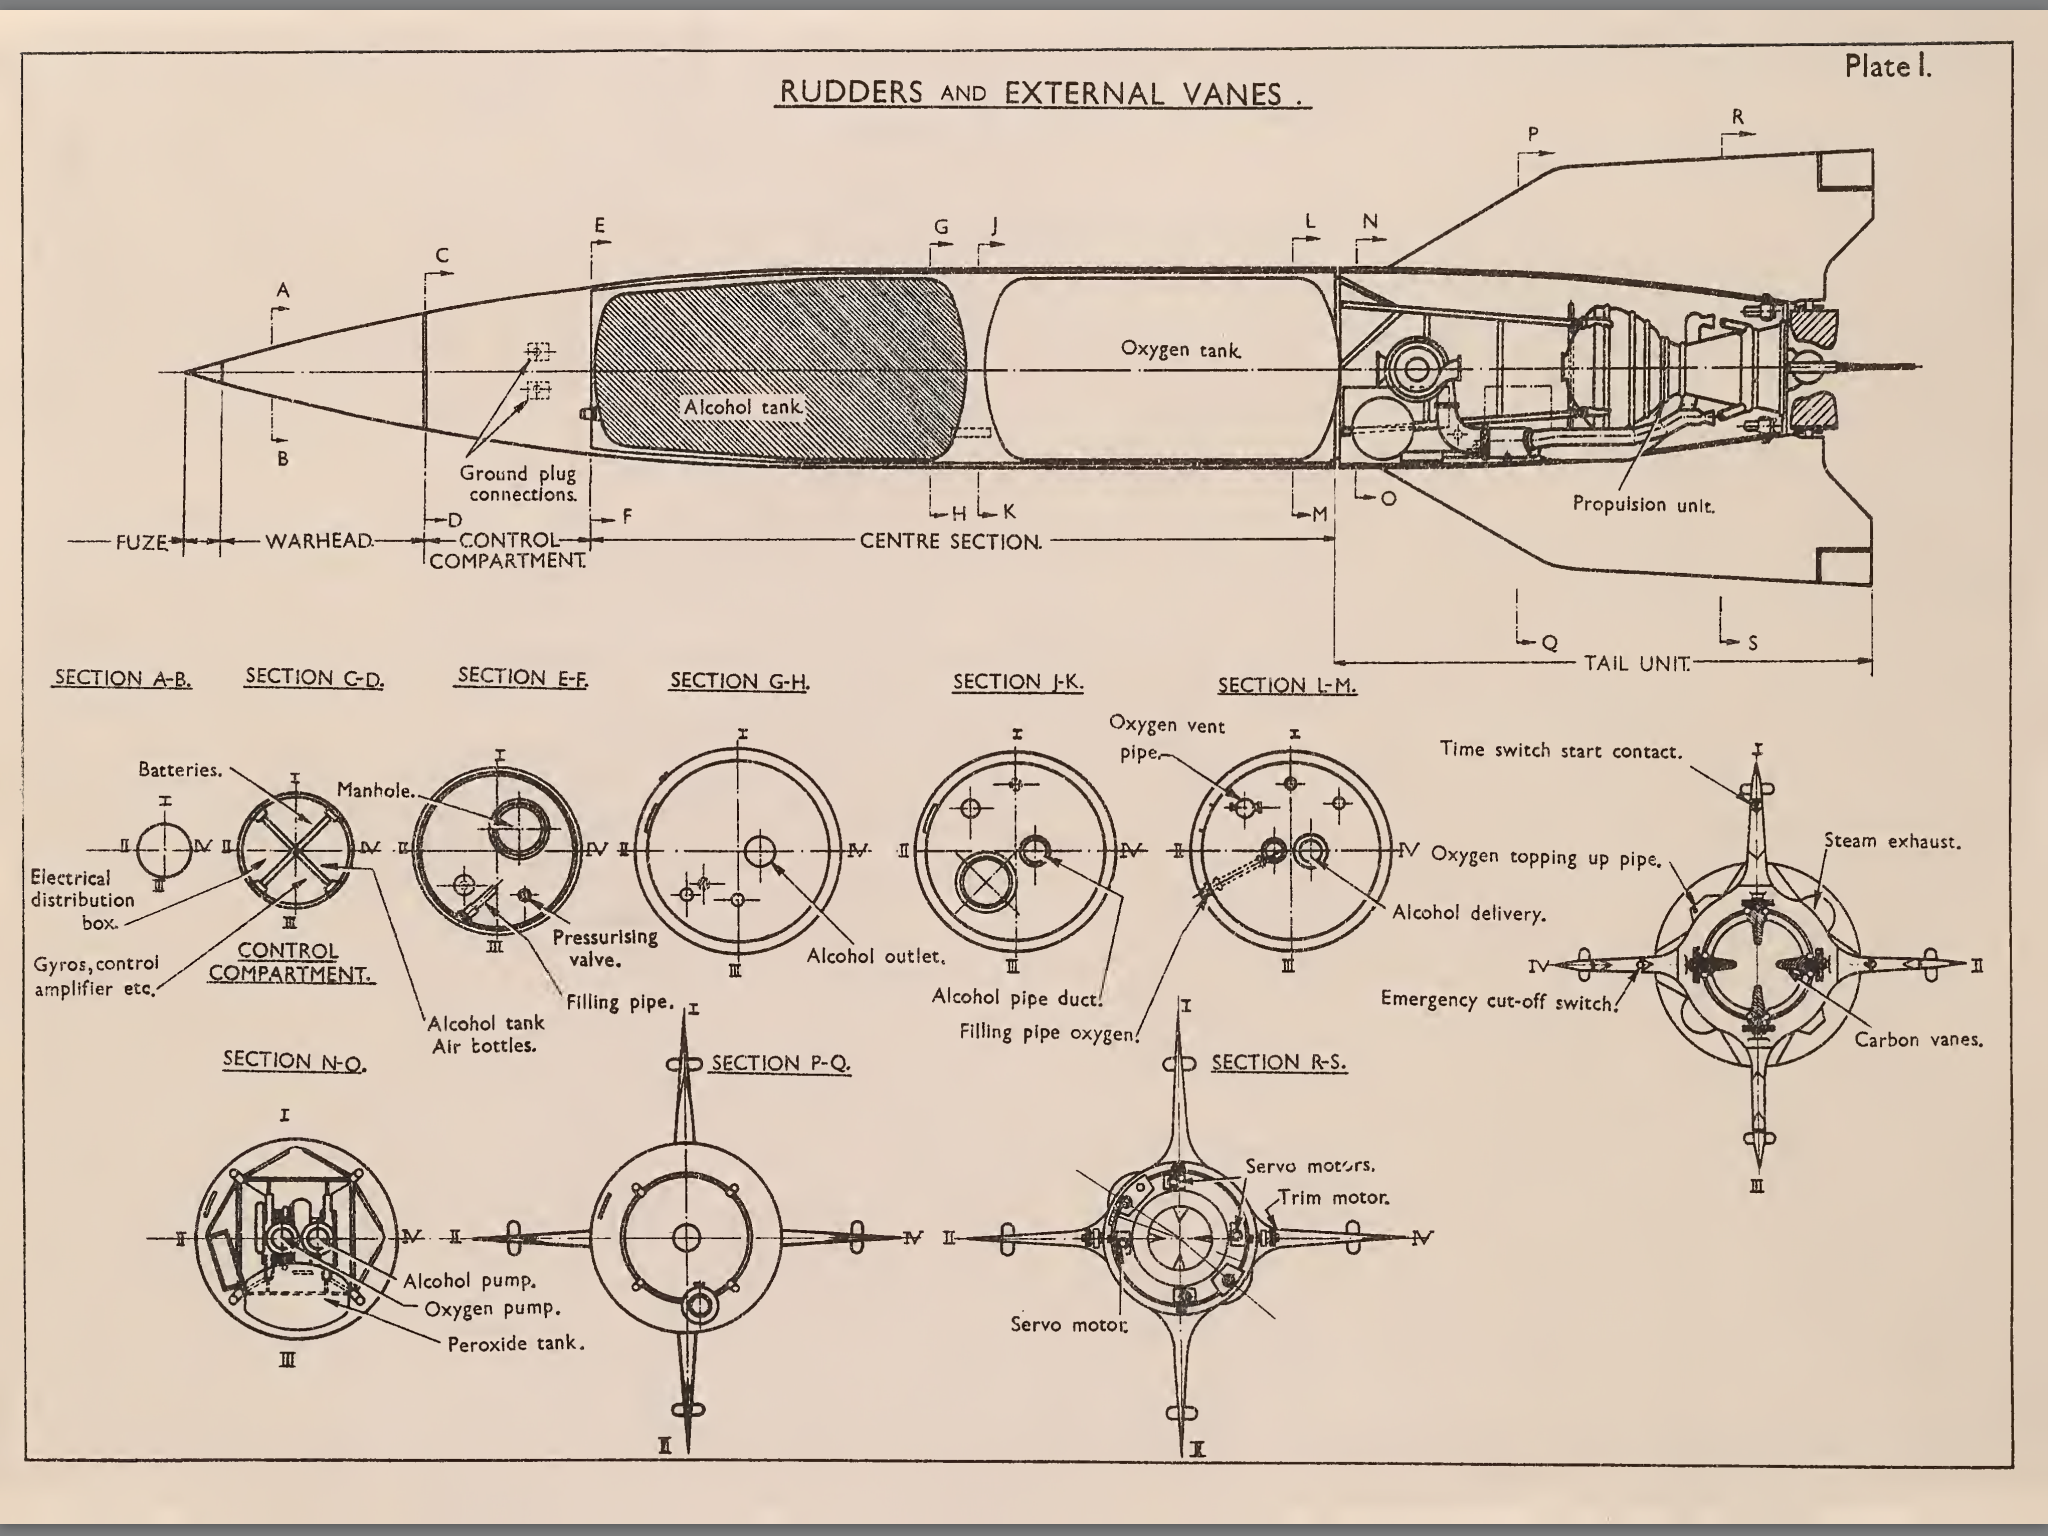 V2 Engine Diagram Wiring Library 1971 Spitfire Gt6 Triumph Blueprint Of A4 Rocket Space Aircraft Design